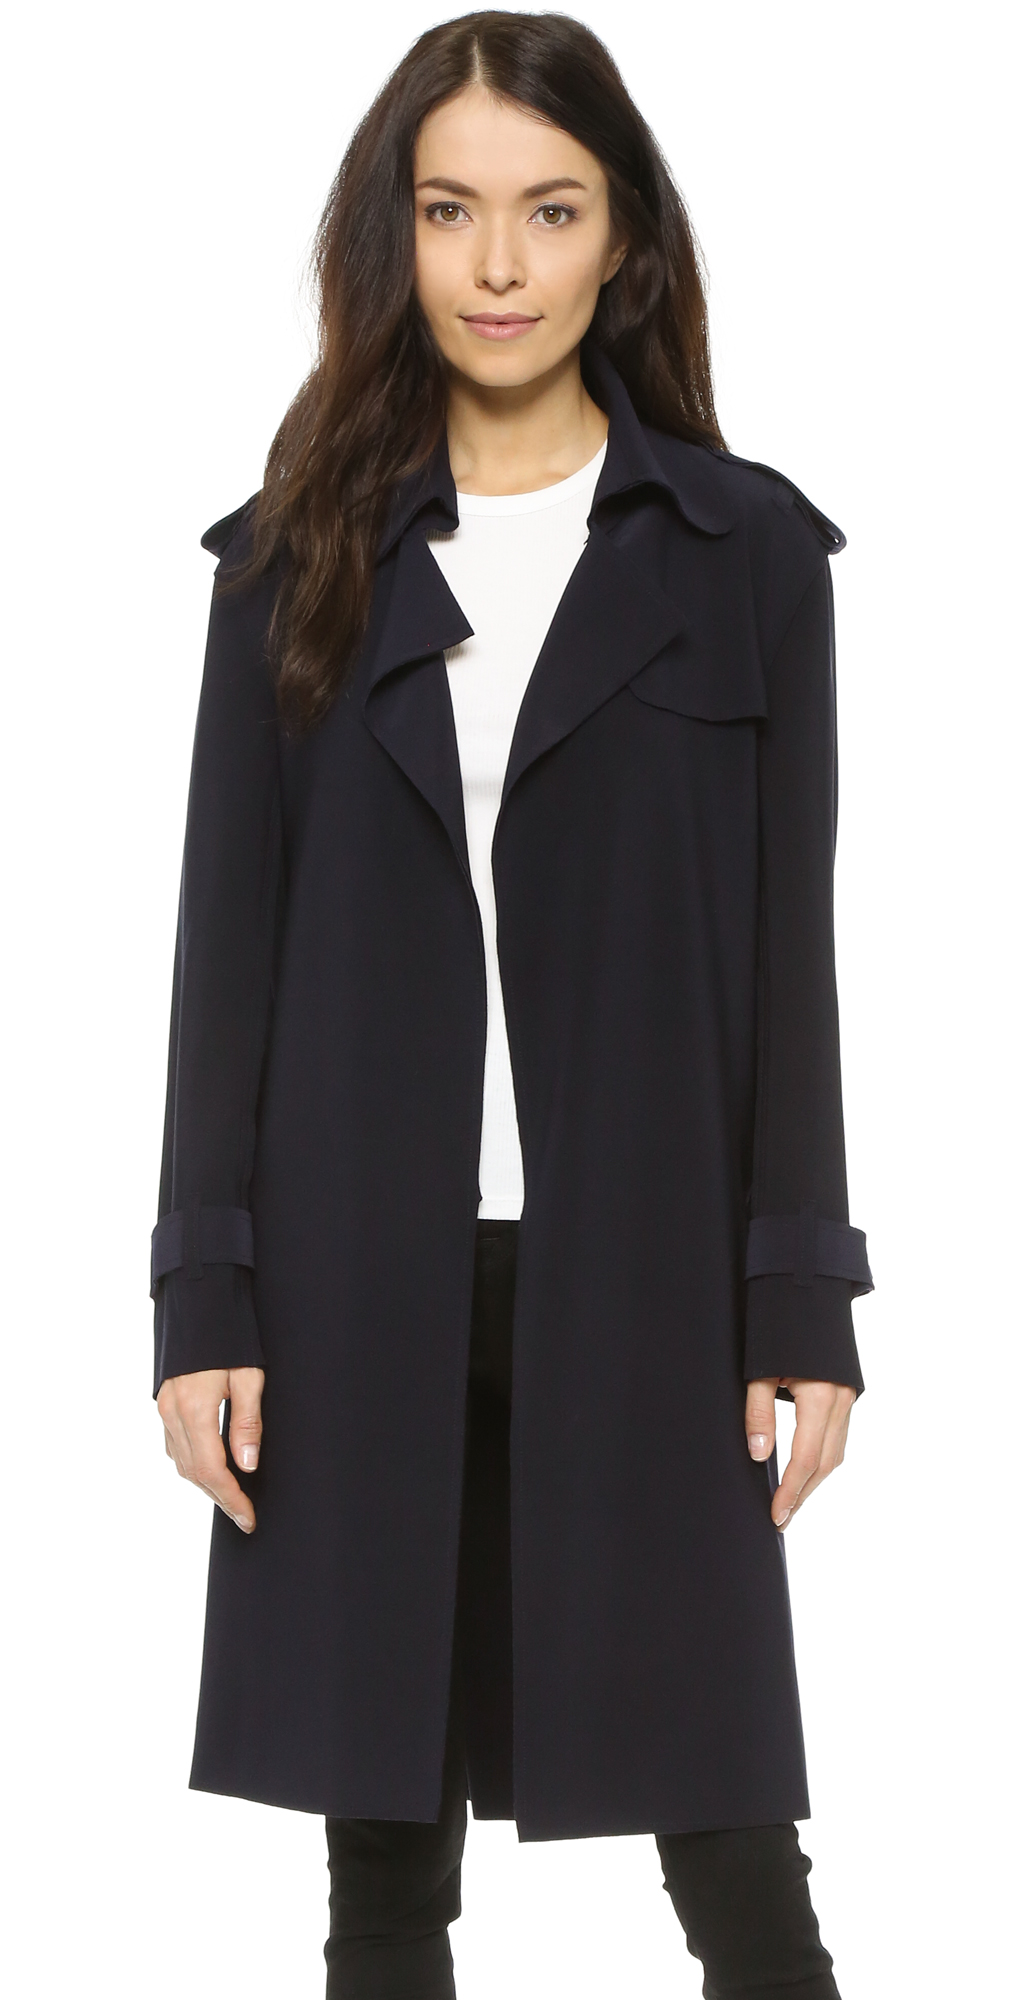 Kamali Kulture Double Breasted Trench Coat Norma Kamali